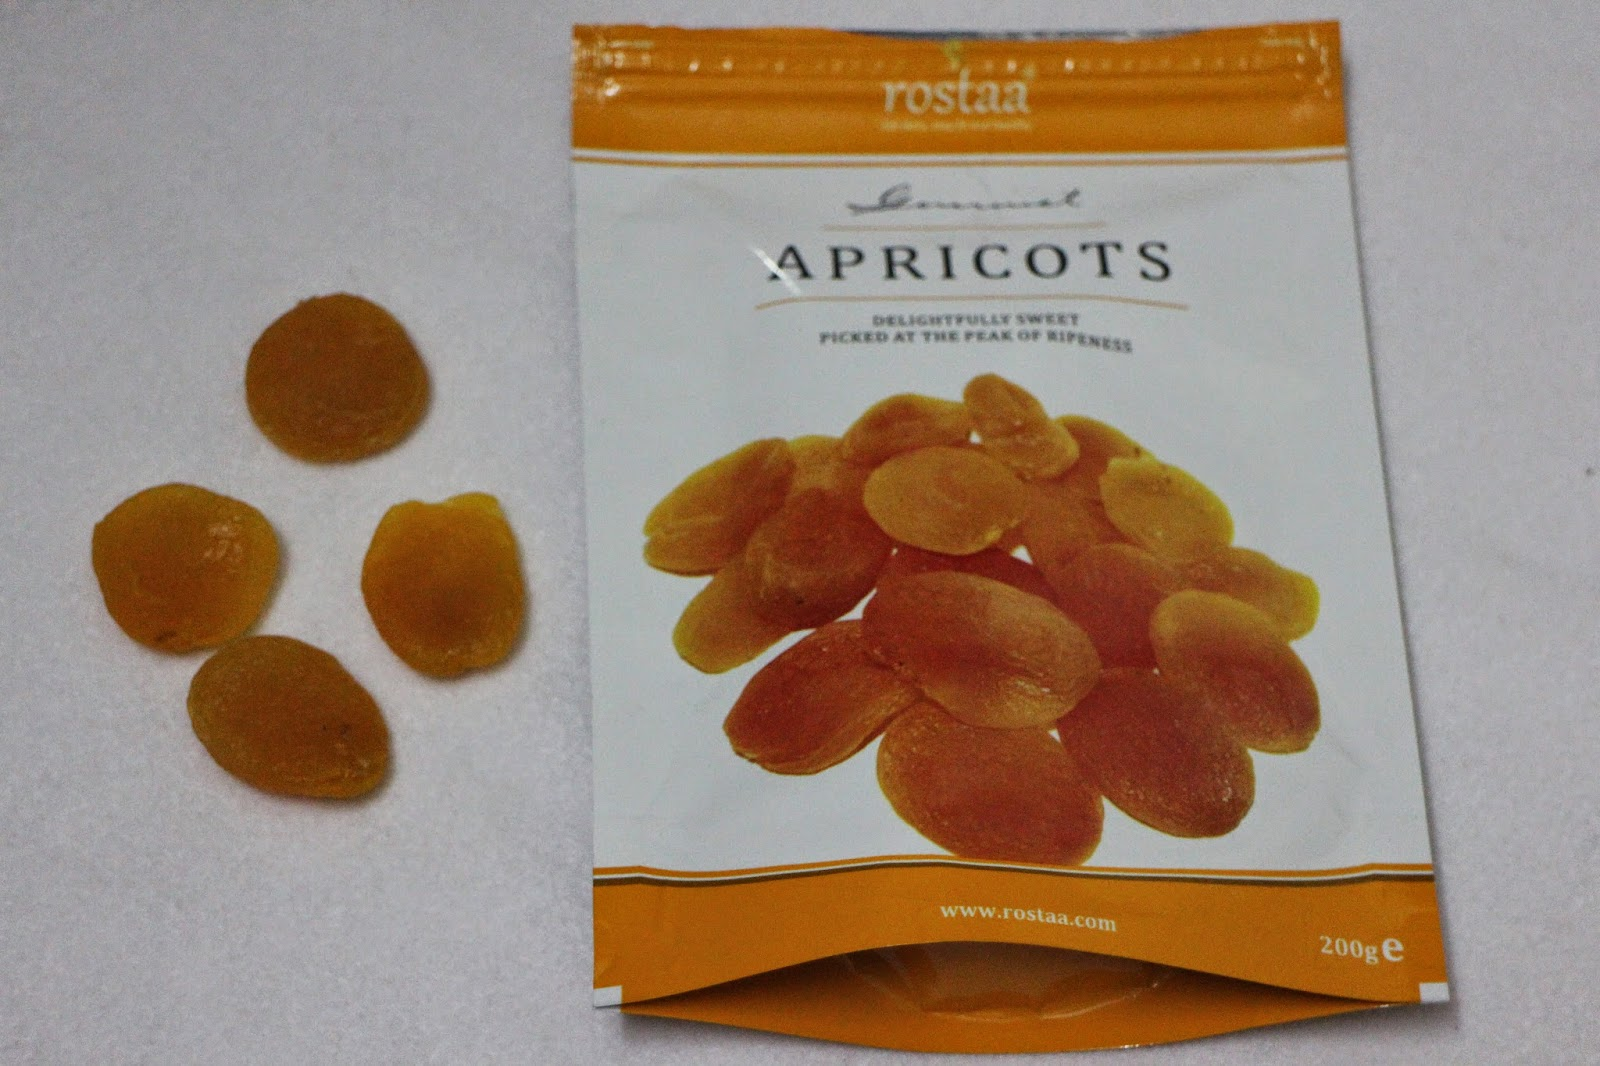 Godrej Nature's Basket, Apricots, Rostaa Apricots, Food